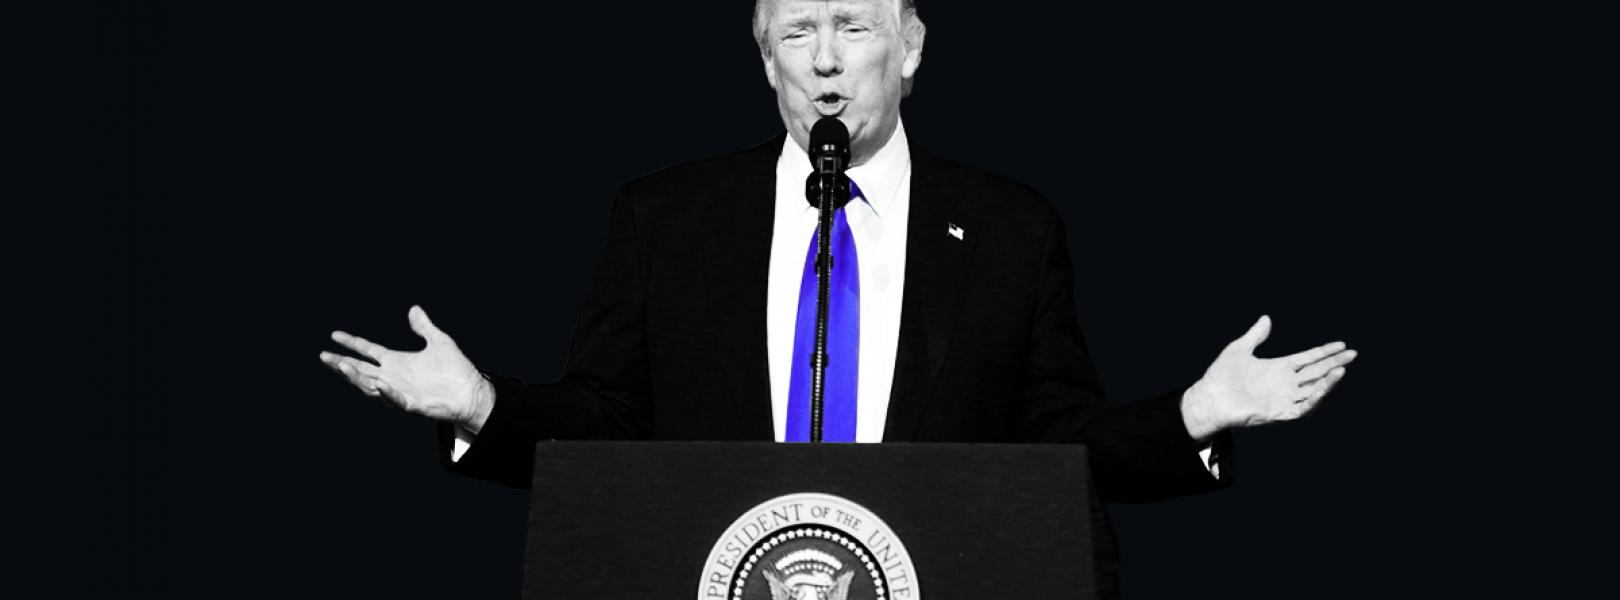 Donald Trump standing behind the presidential seal, with a black background